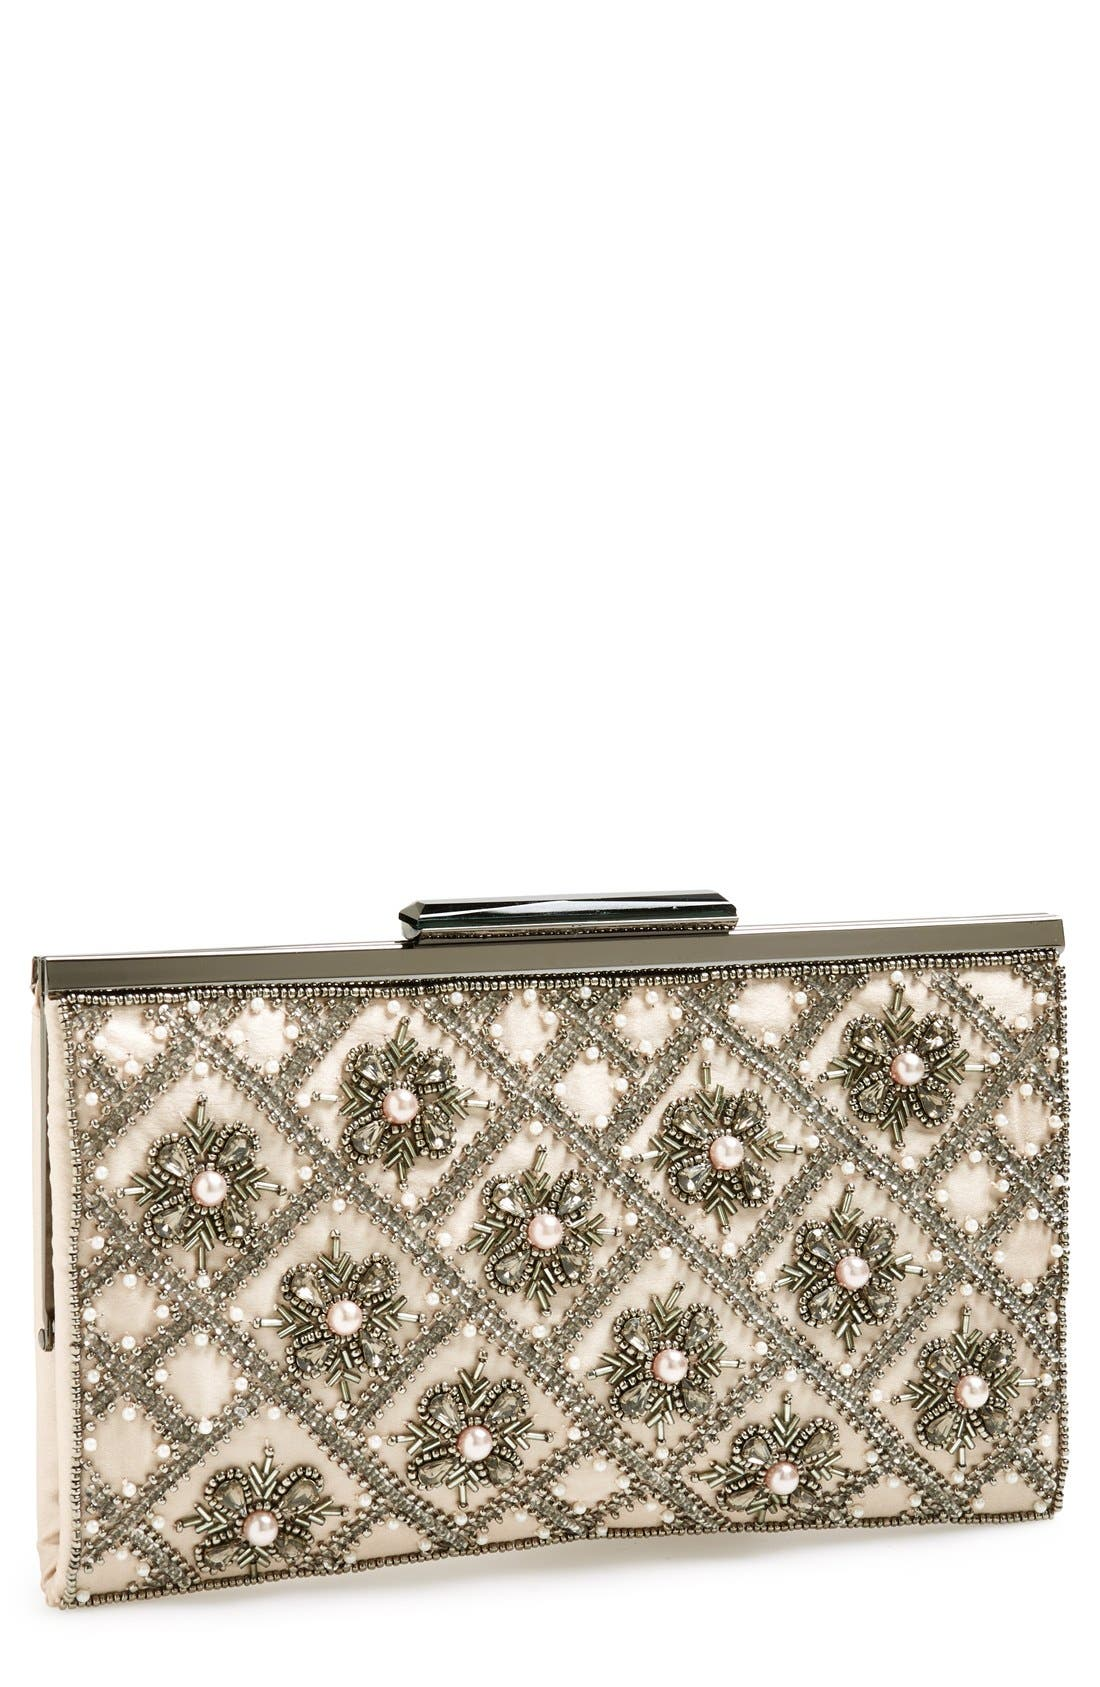 GLINT, 'Topper' Embellished Frame Clutch, Main thumbnail 1, color, 950